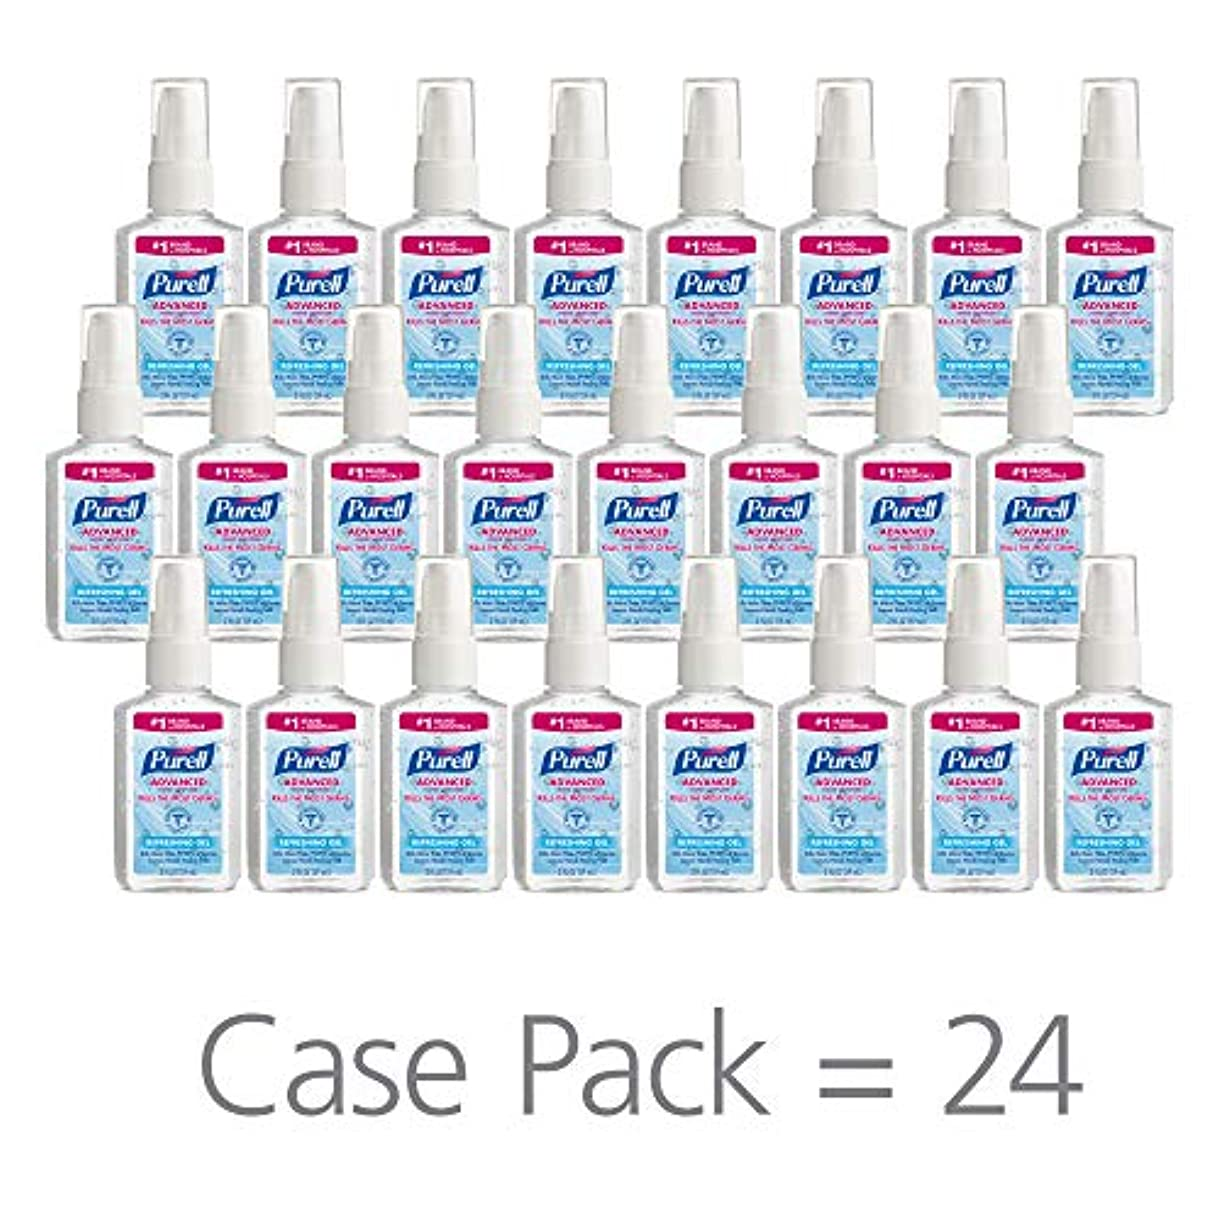 相談する欺再現するPURELL 9606-24 Advanced Instant Hand Sanitizer, 2 fl. oz. Pump Bottle (Case of 24),2 fl. Oz by Purell